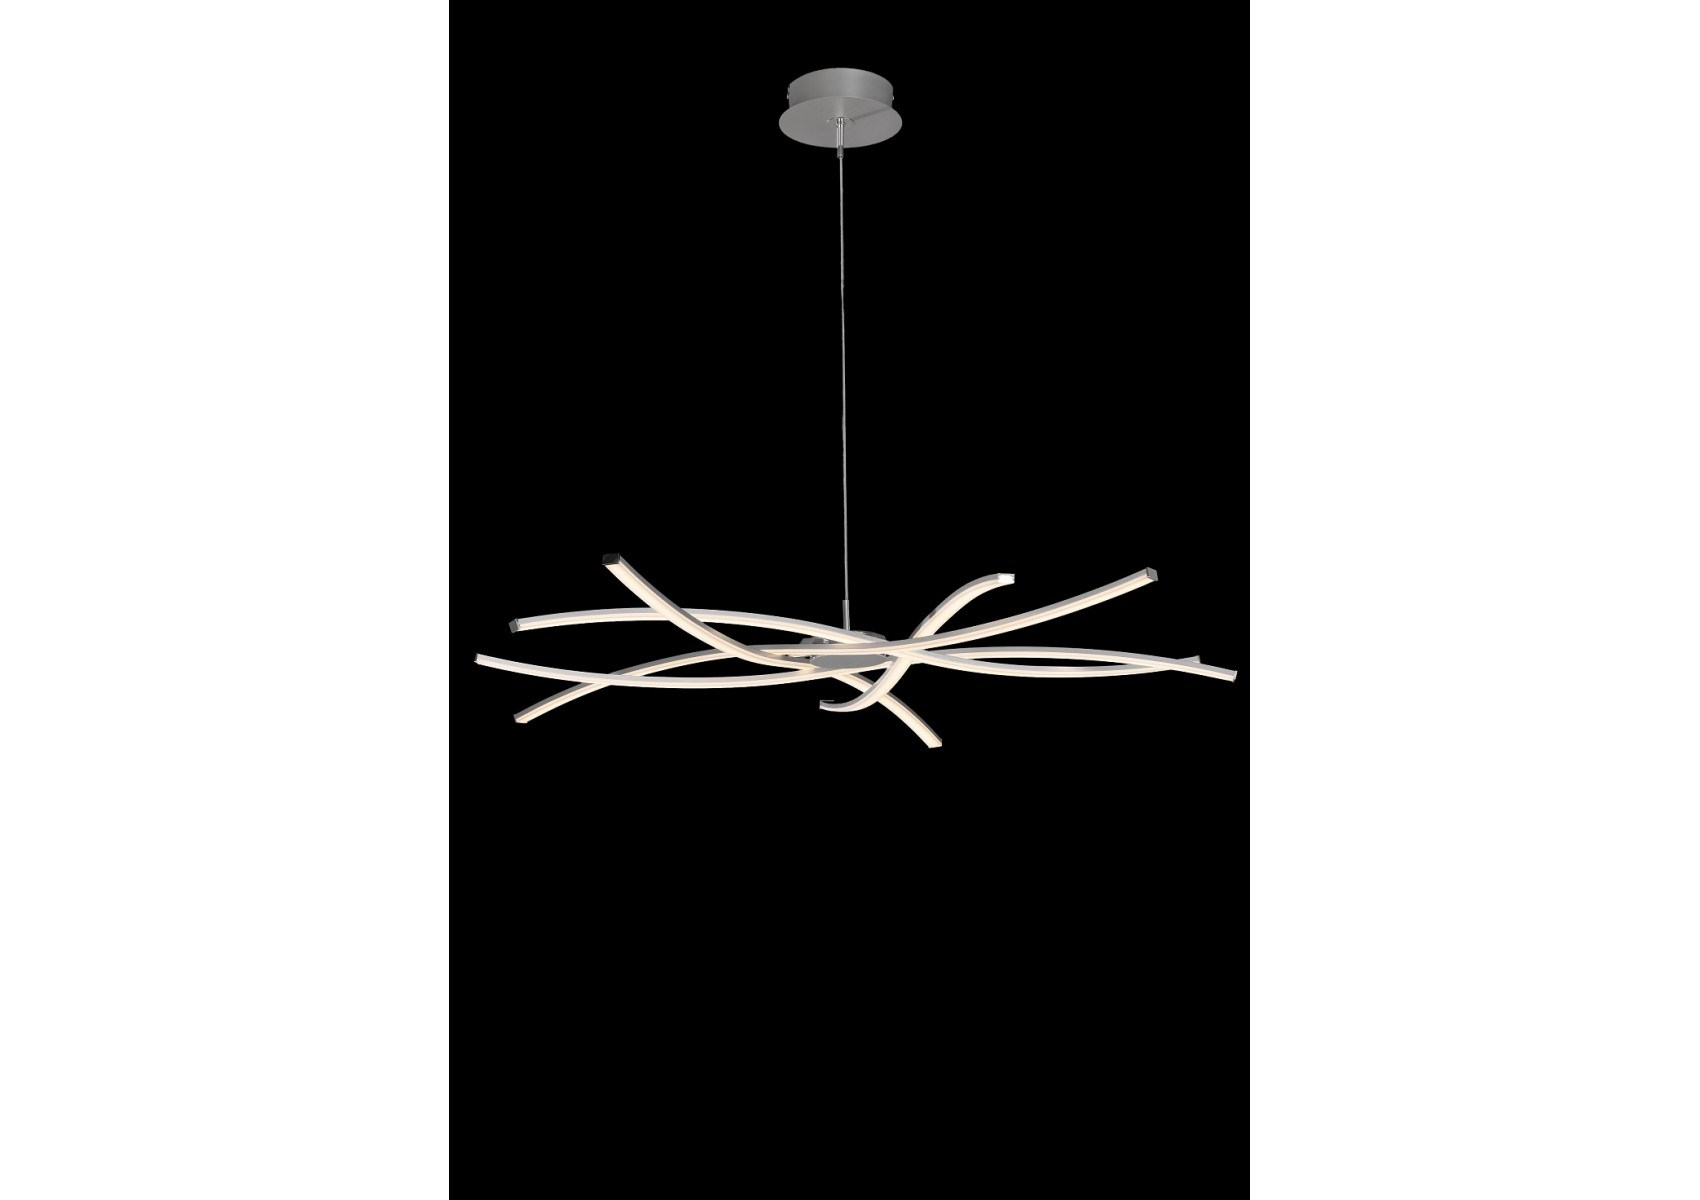 lustre design 5 lampes led aire taille xxl dimmable de chez mantra. Black Bedroom Furniture Sets. Home Design Ideas